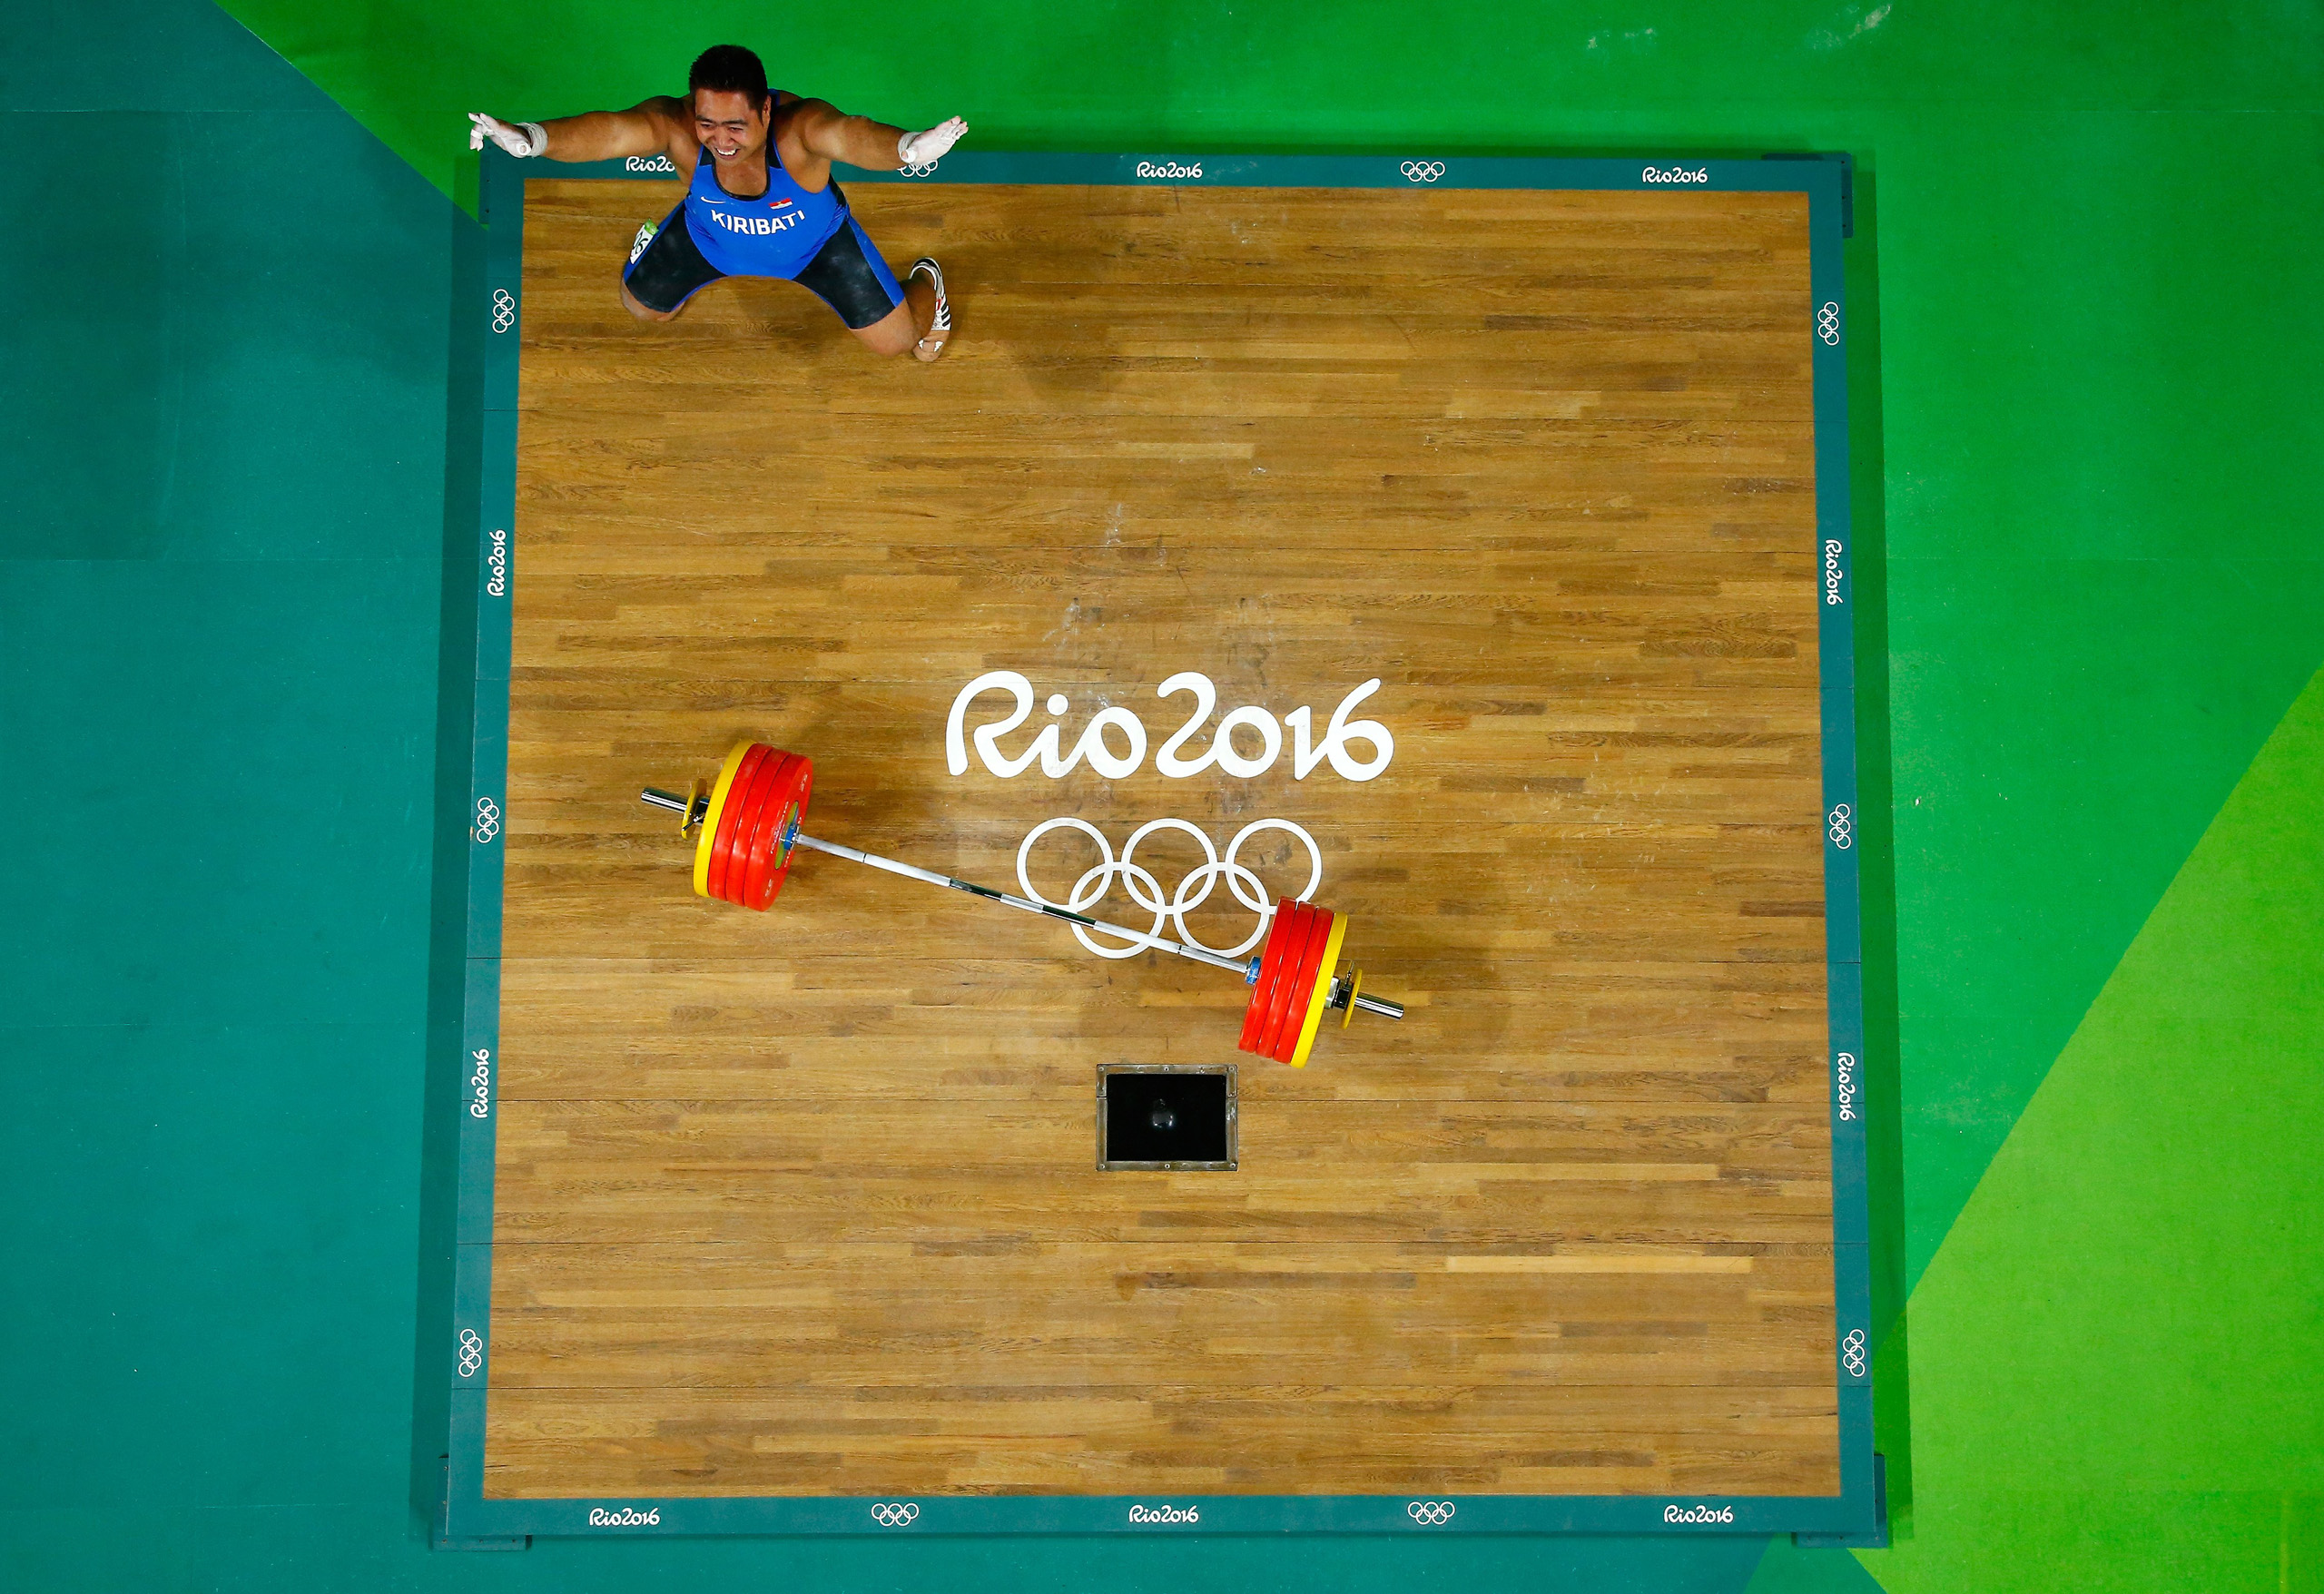 David Katoatau of Kiribati reacts during the Men's 105kg Group B Weightlifting event on Day 10 of the Rio 2016 Olympic Games at Riocentro - Pavilion 2 in Rio de Janeiro on Aug. 15, 2016.